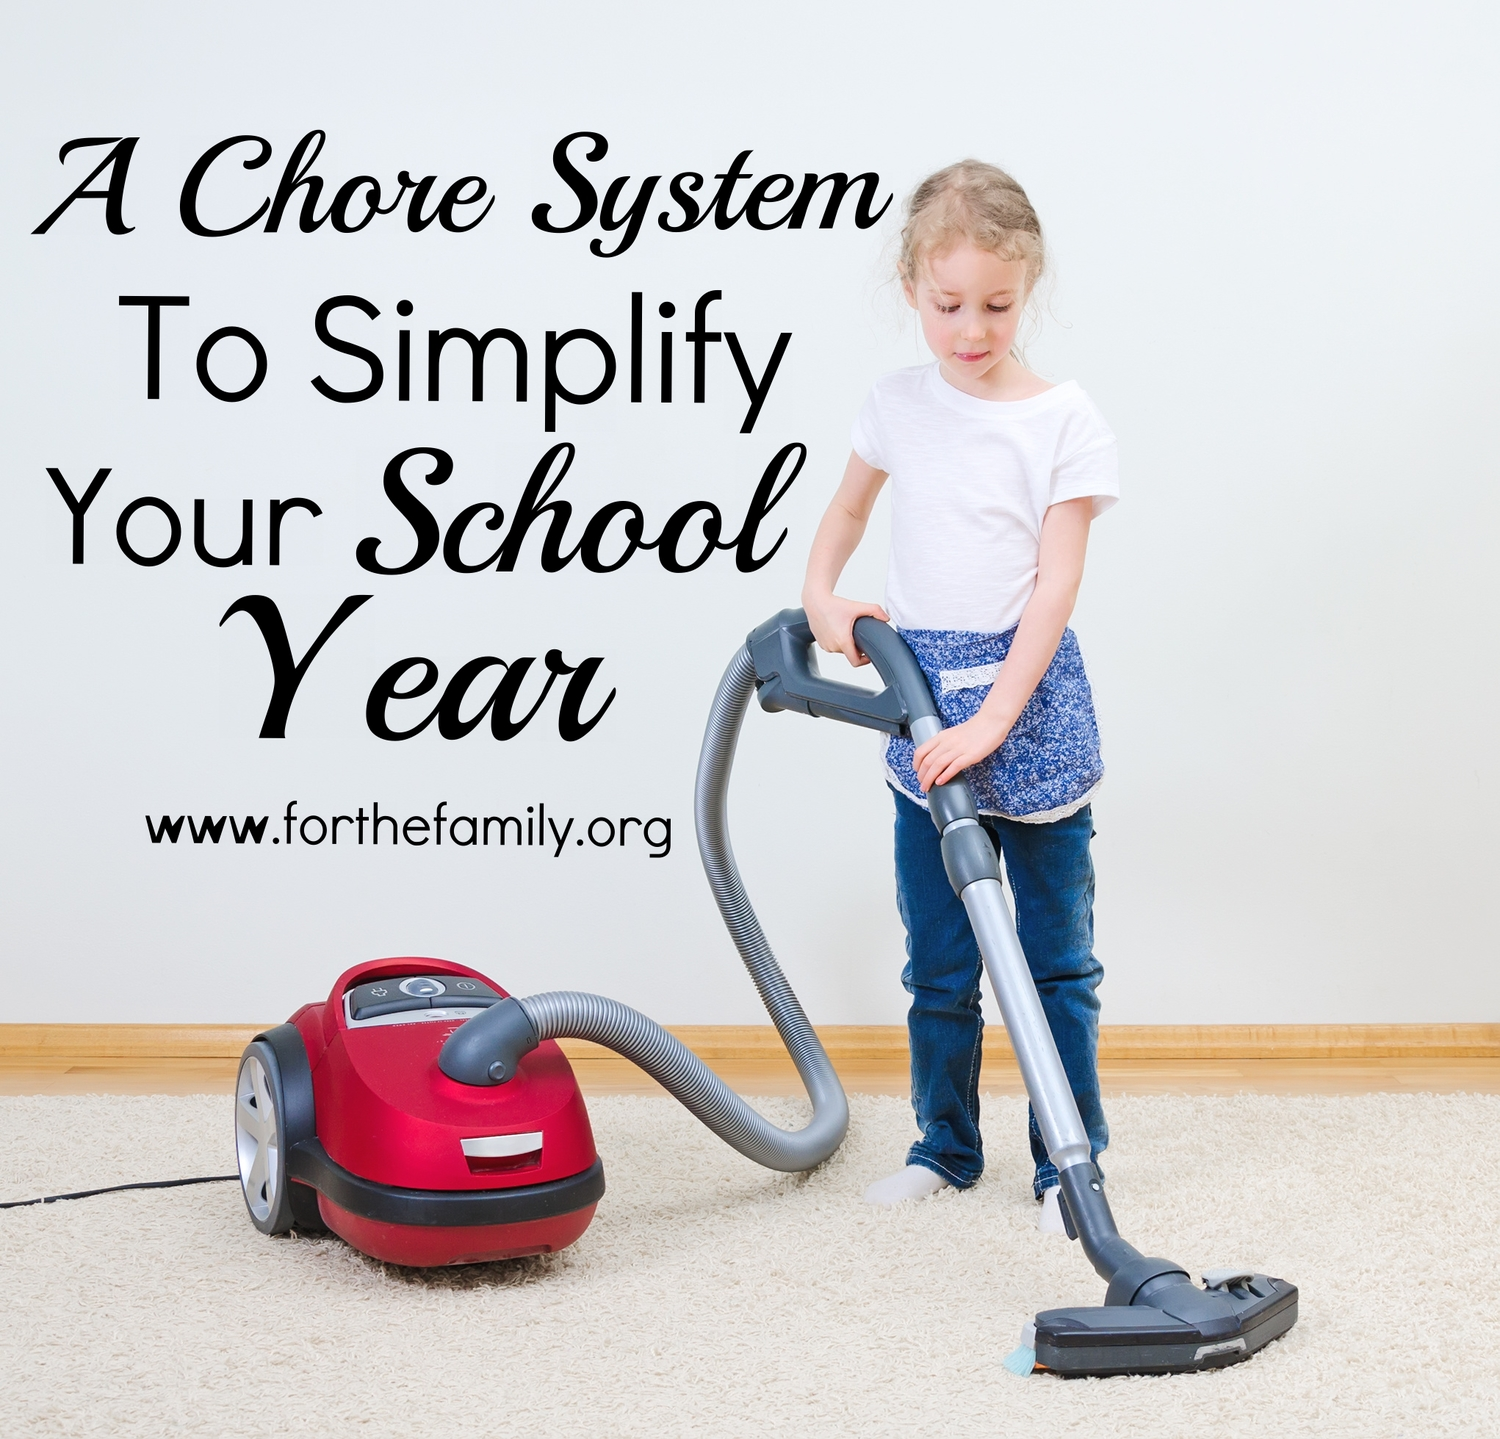 A Chore System to Simplify Your School Year